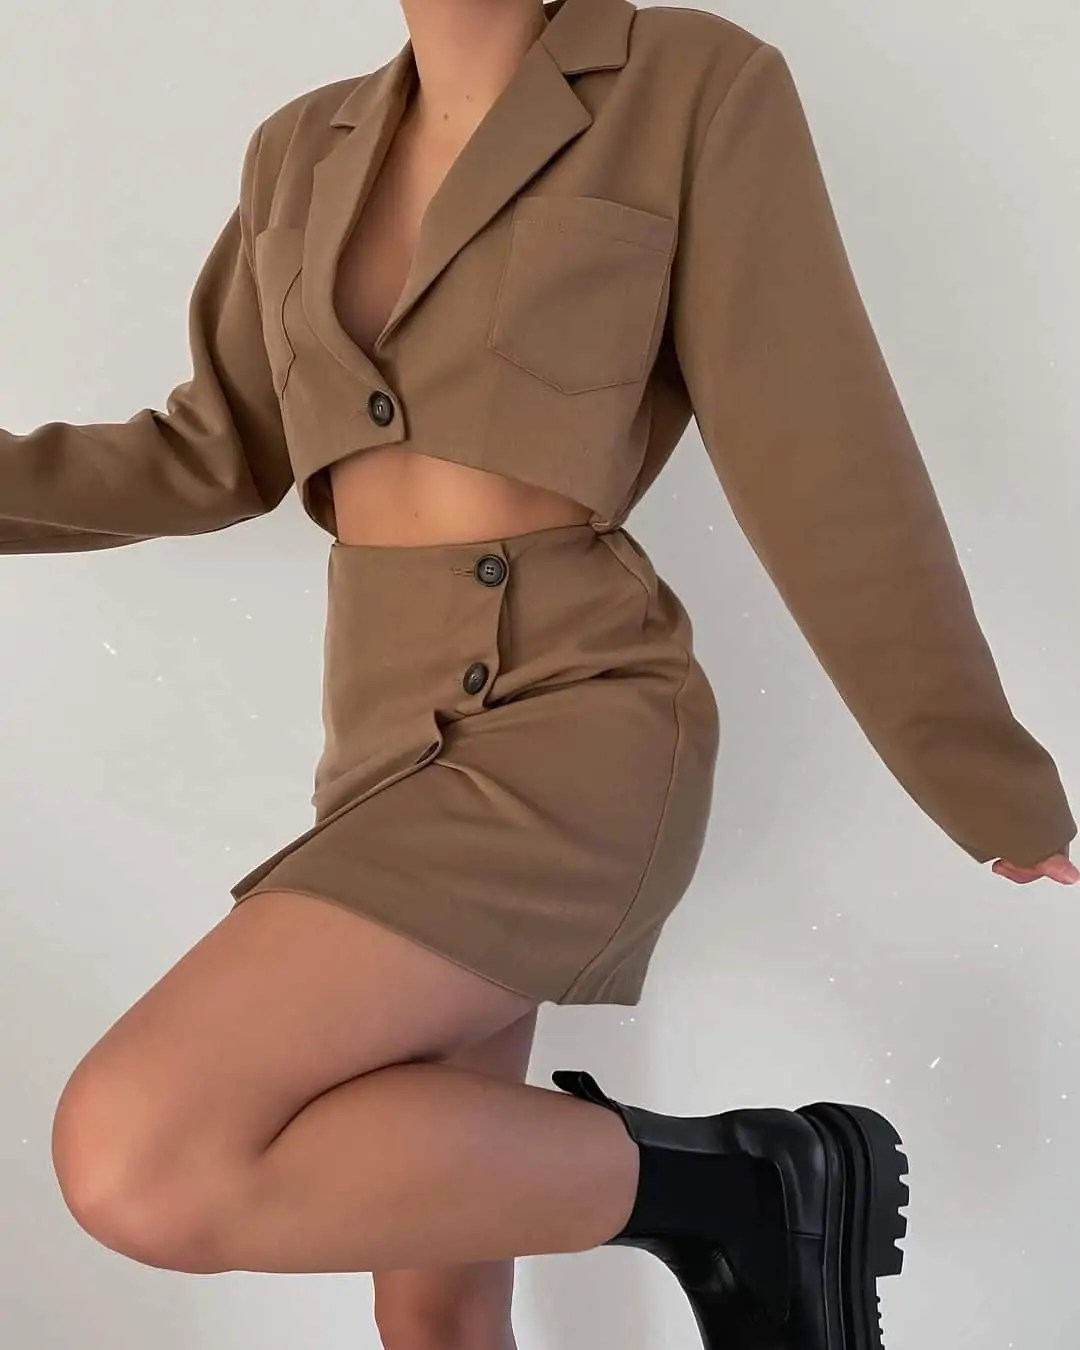 100+ Outfits to Inspire your next shopping haul 257